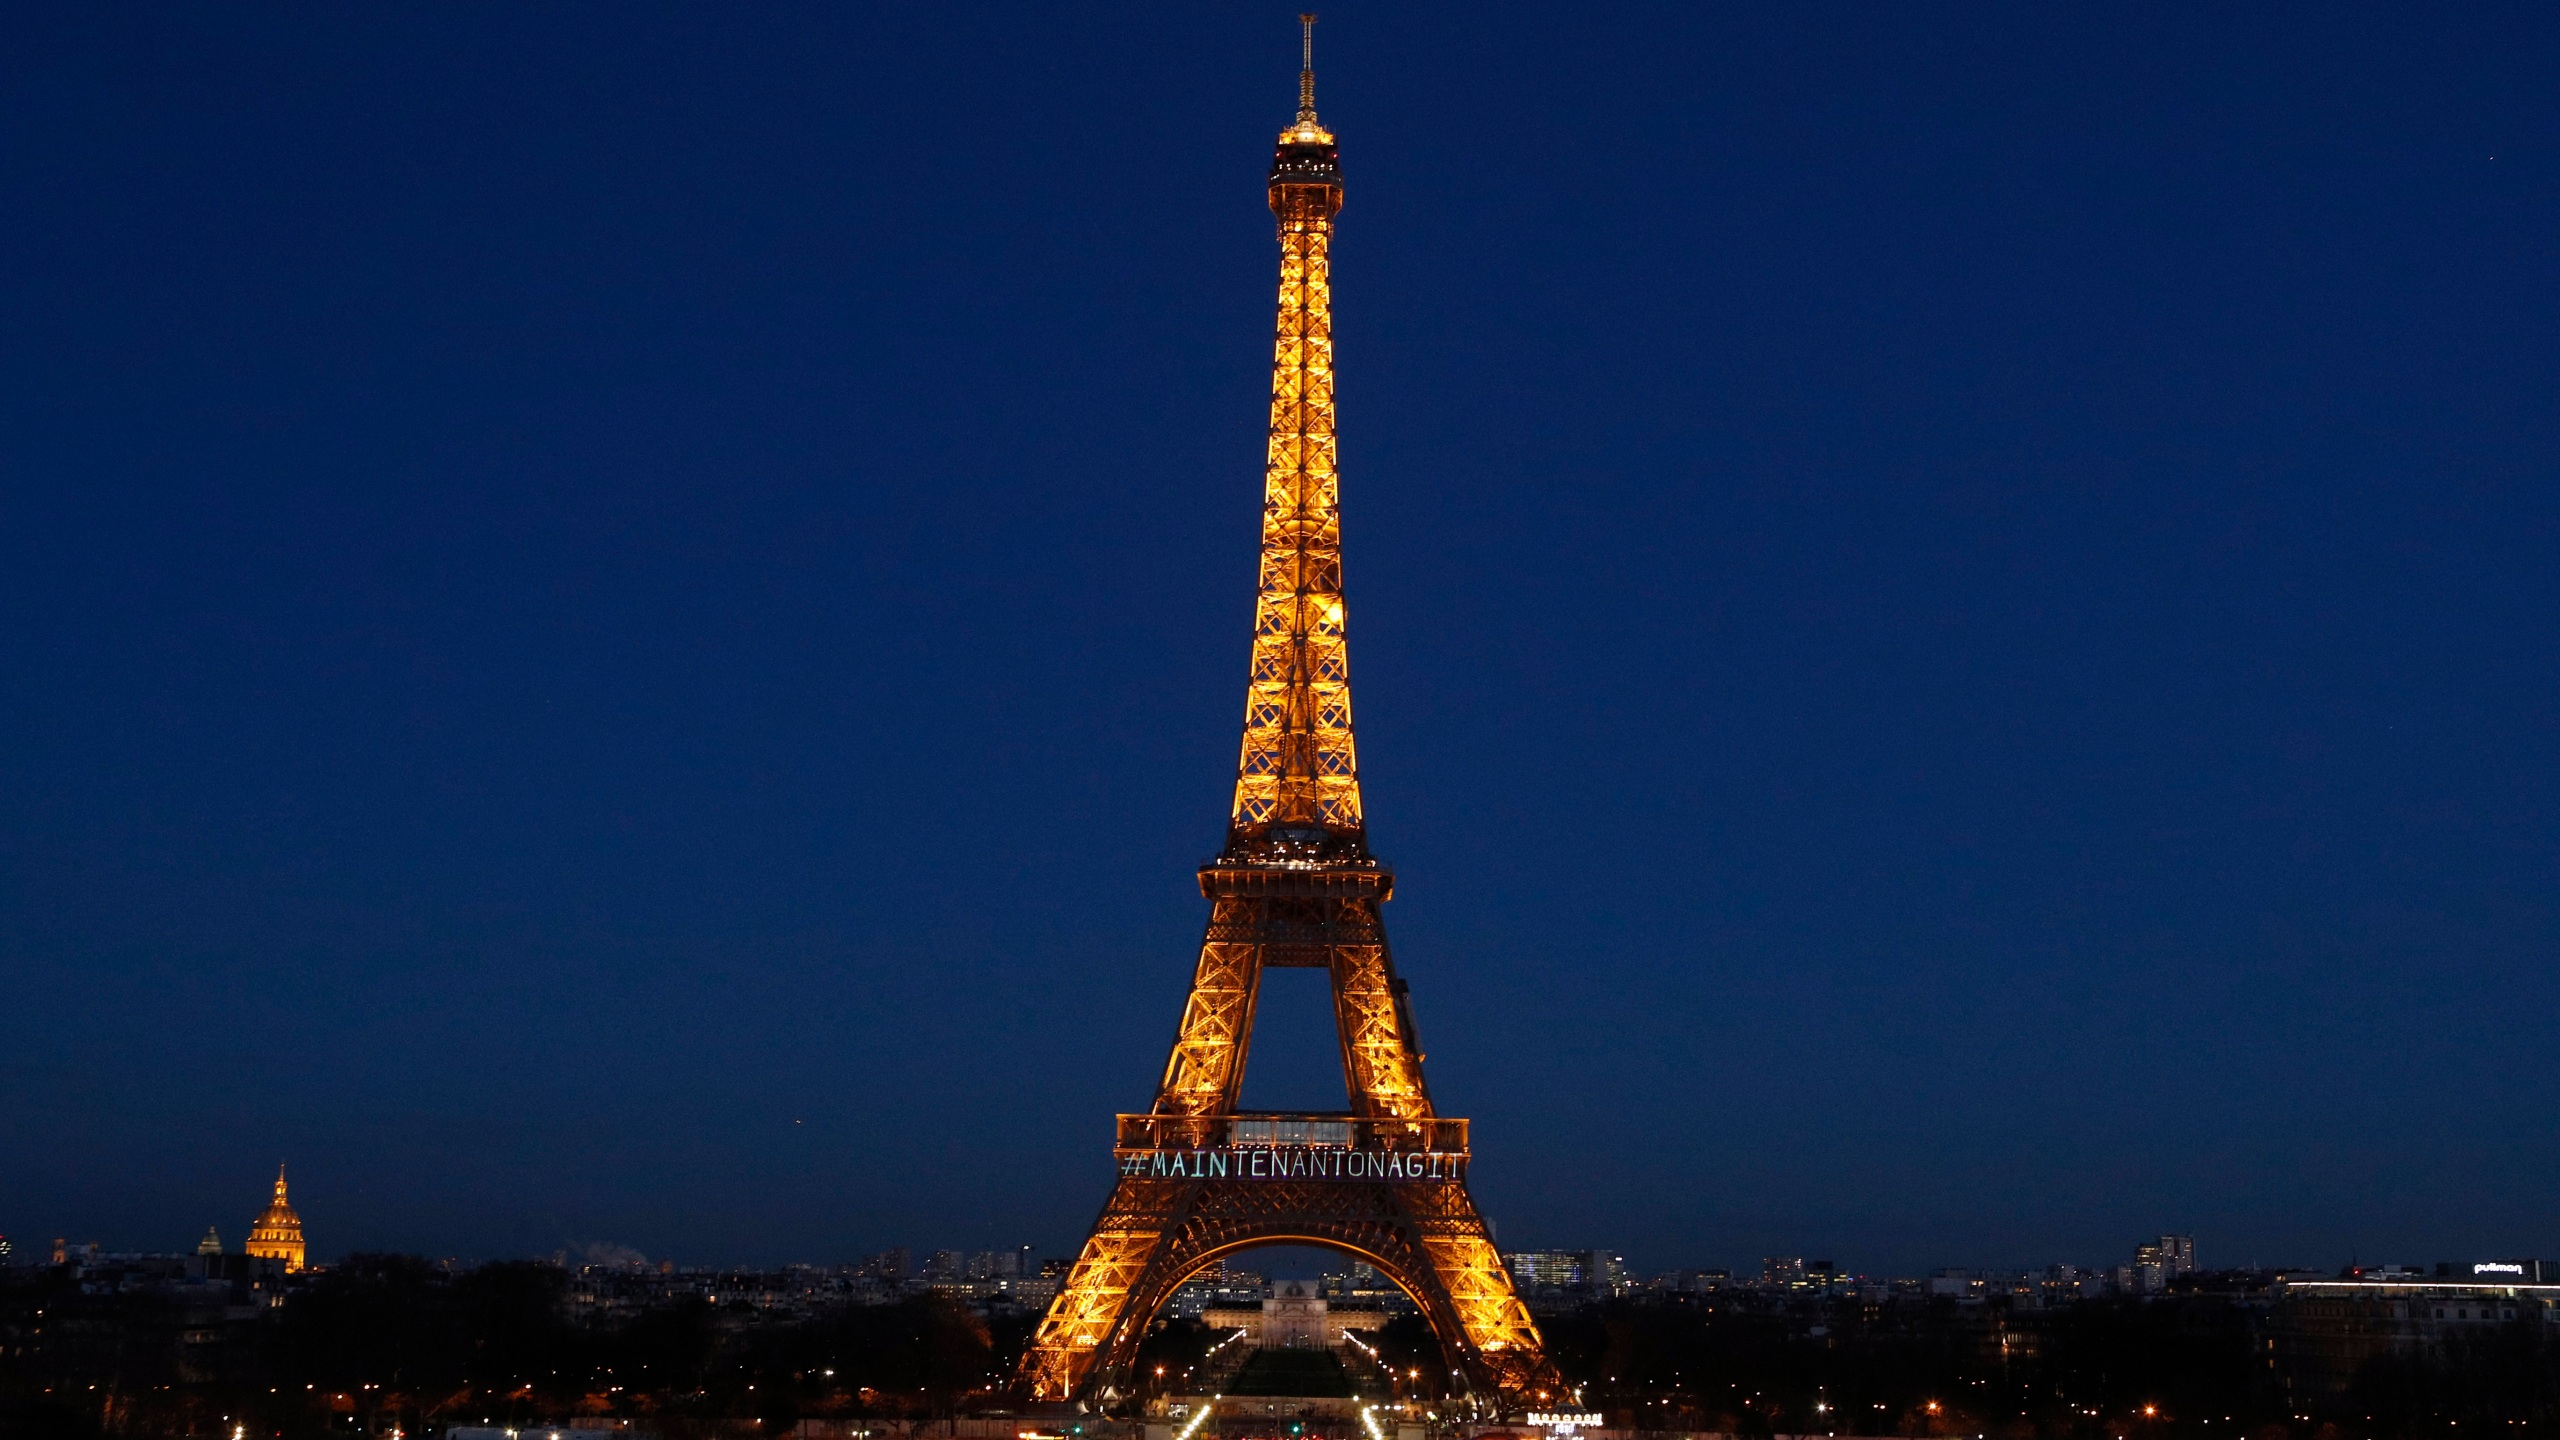 France_Eiffel_Tower_24728-159532.jpg97489498